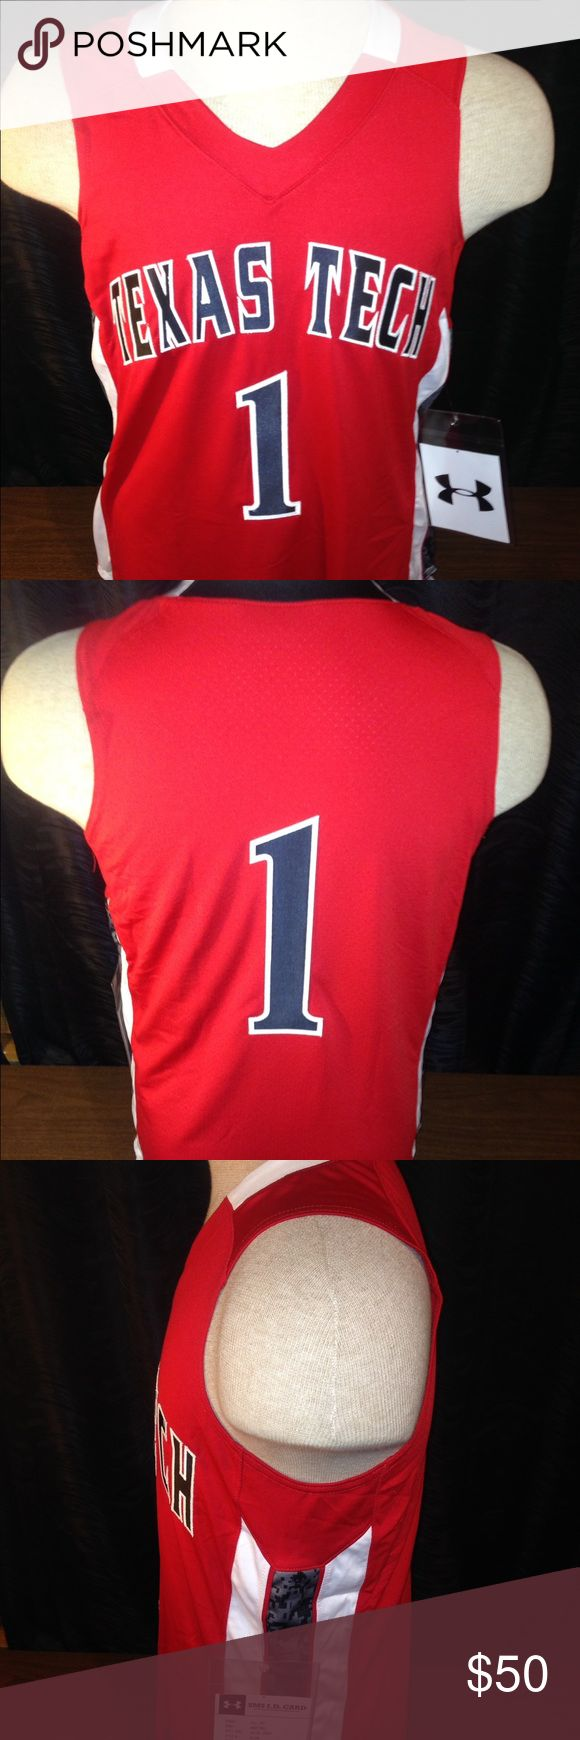 """NWT Texas Tech basketball jersey New with tags. Approximate measurements are: armpit to armpit: 19"""" back of collar to bottom of jersey: 28"""" Nike Other"""